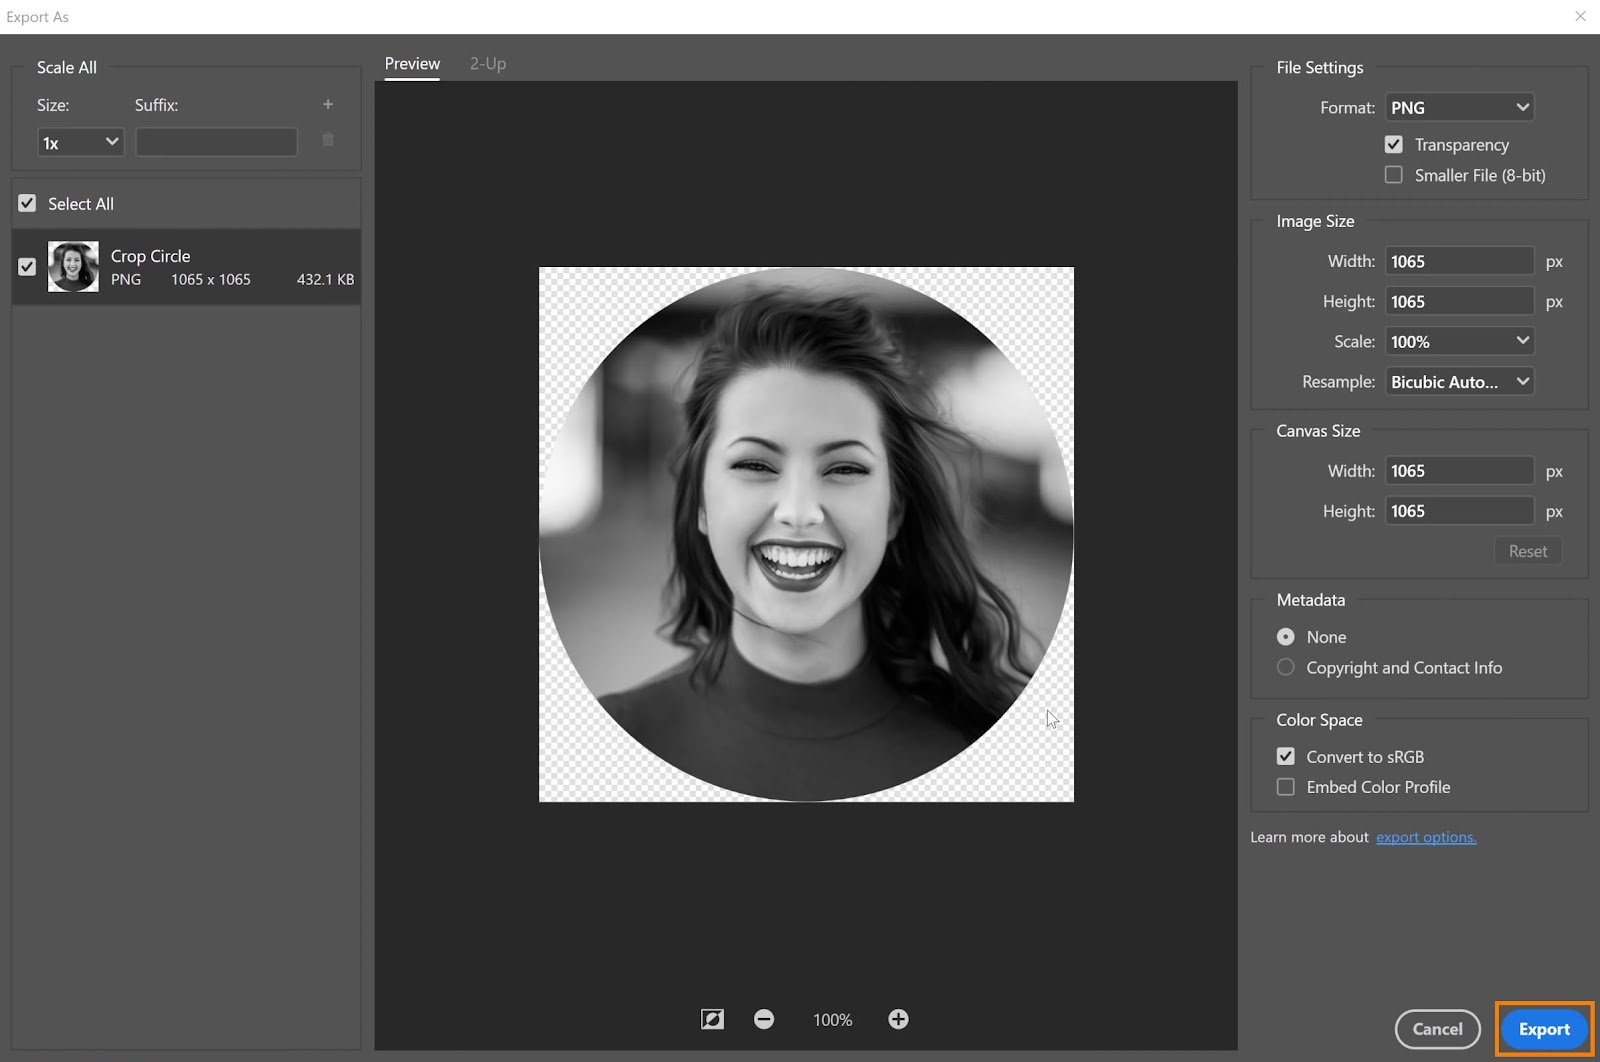 Click on the Export button - How to Crop in a Circle in Photoshop